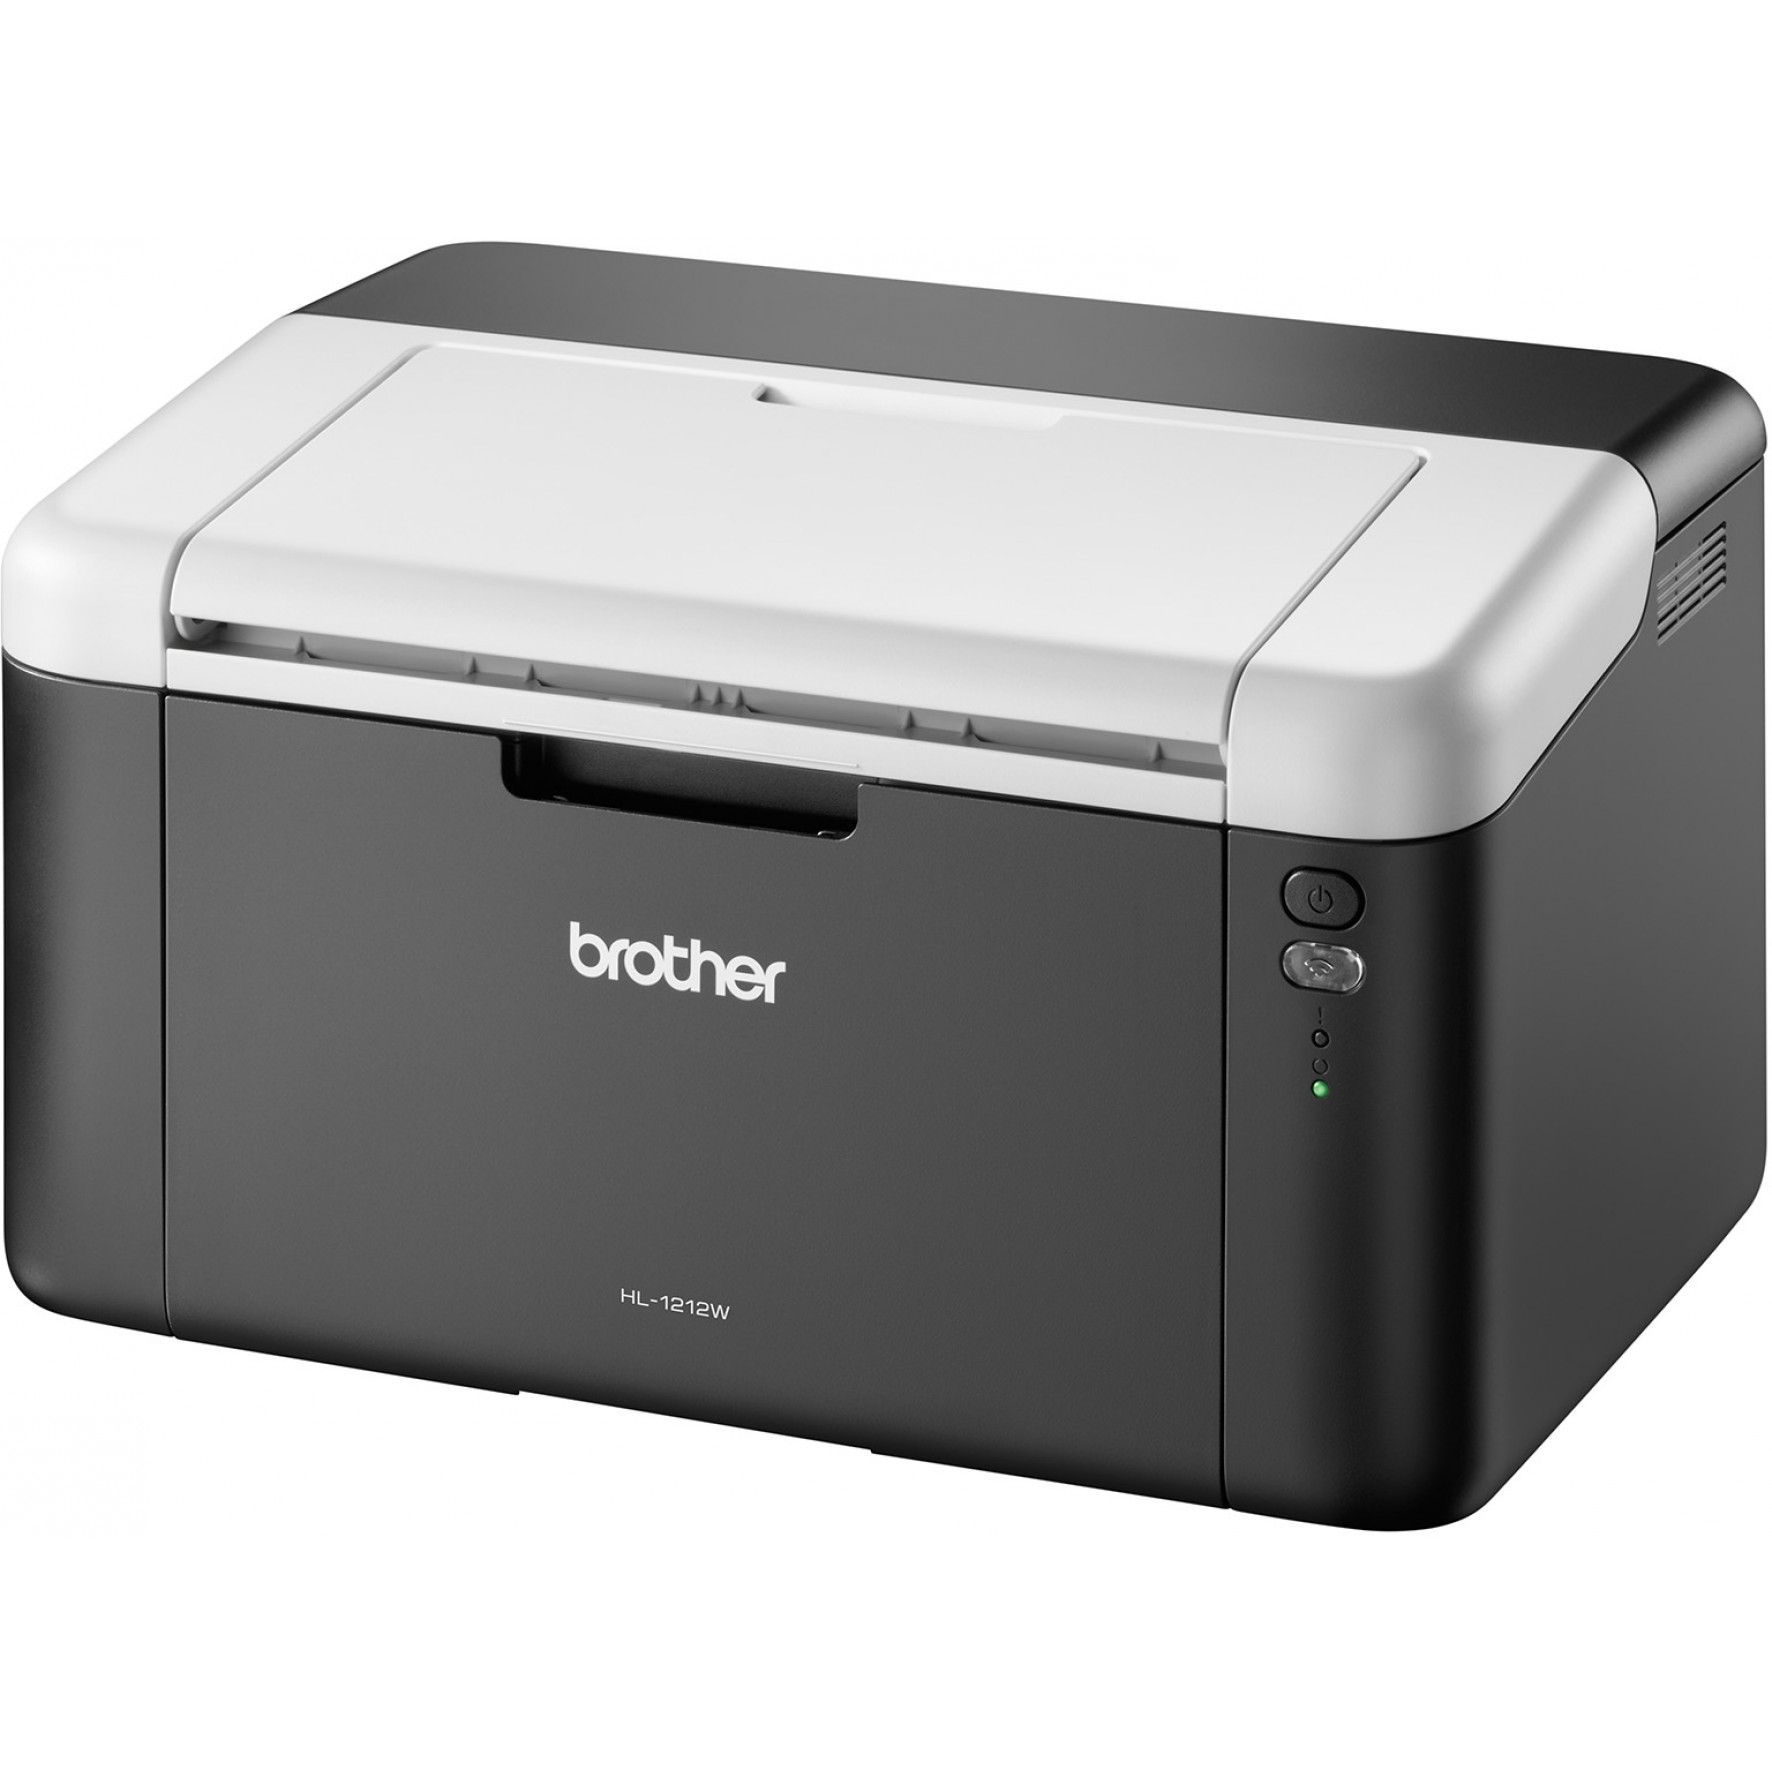 brother hl 1212wg printer b w laser led 600 dpi 20 ppm. Black Bedroom Furniture Sets. Home Design Ideas